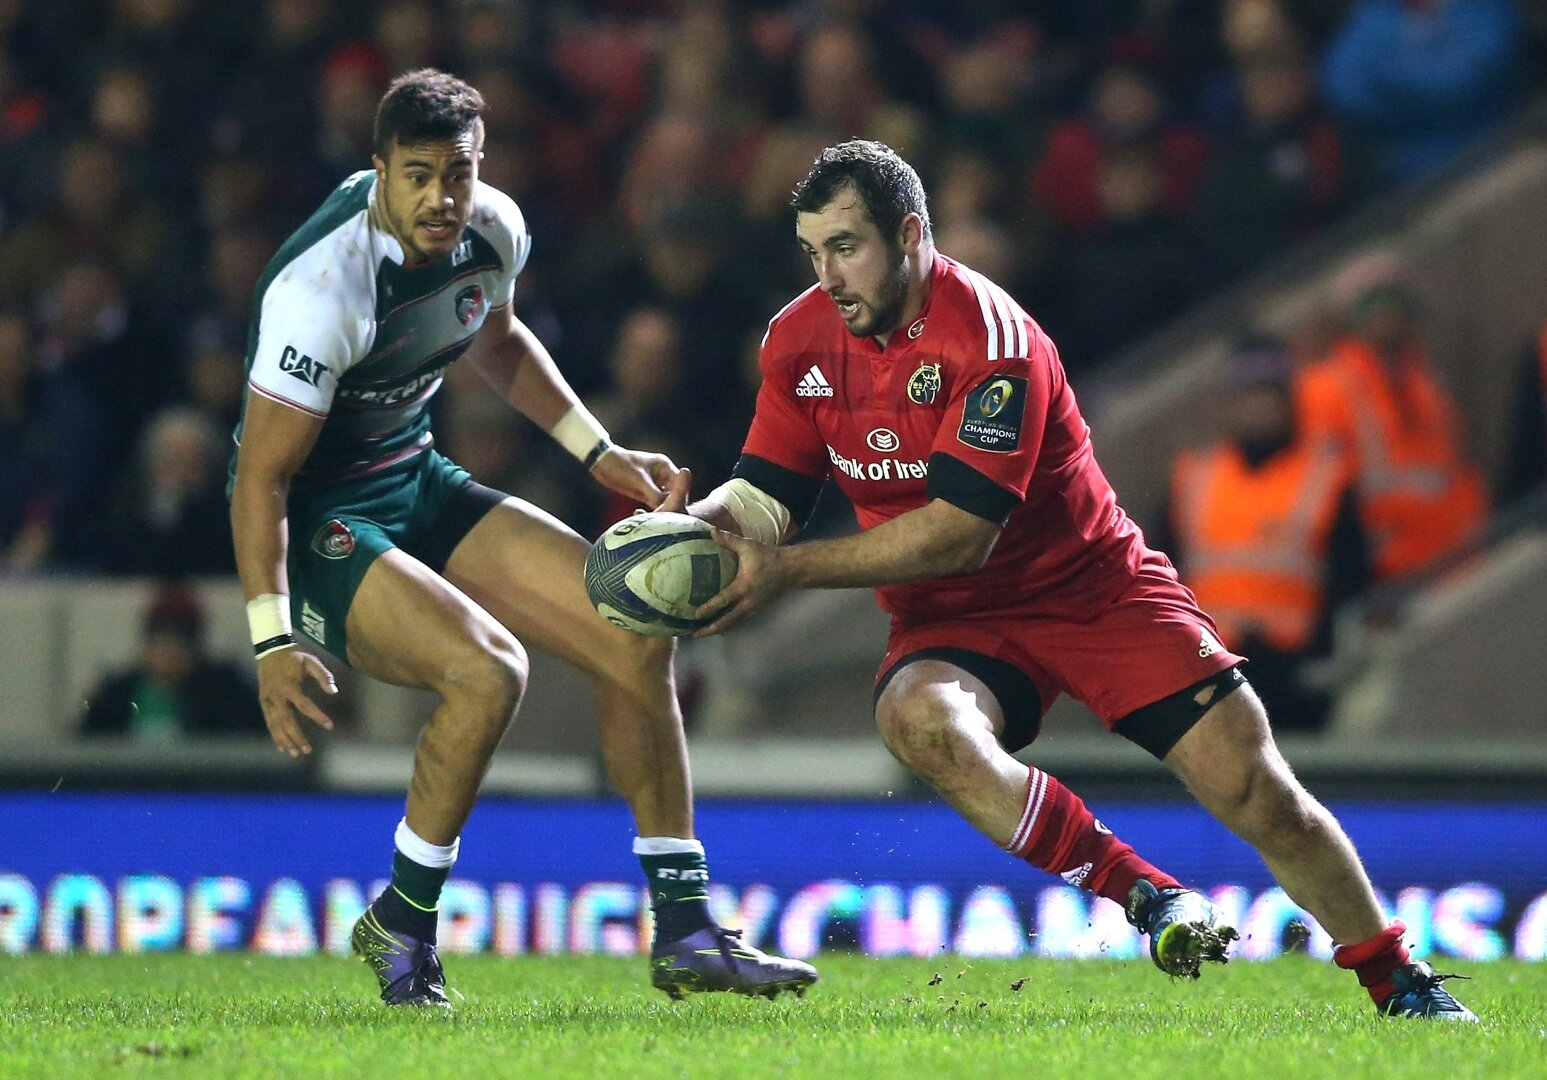 Munster player handed ban for doping violation after pharmacy error